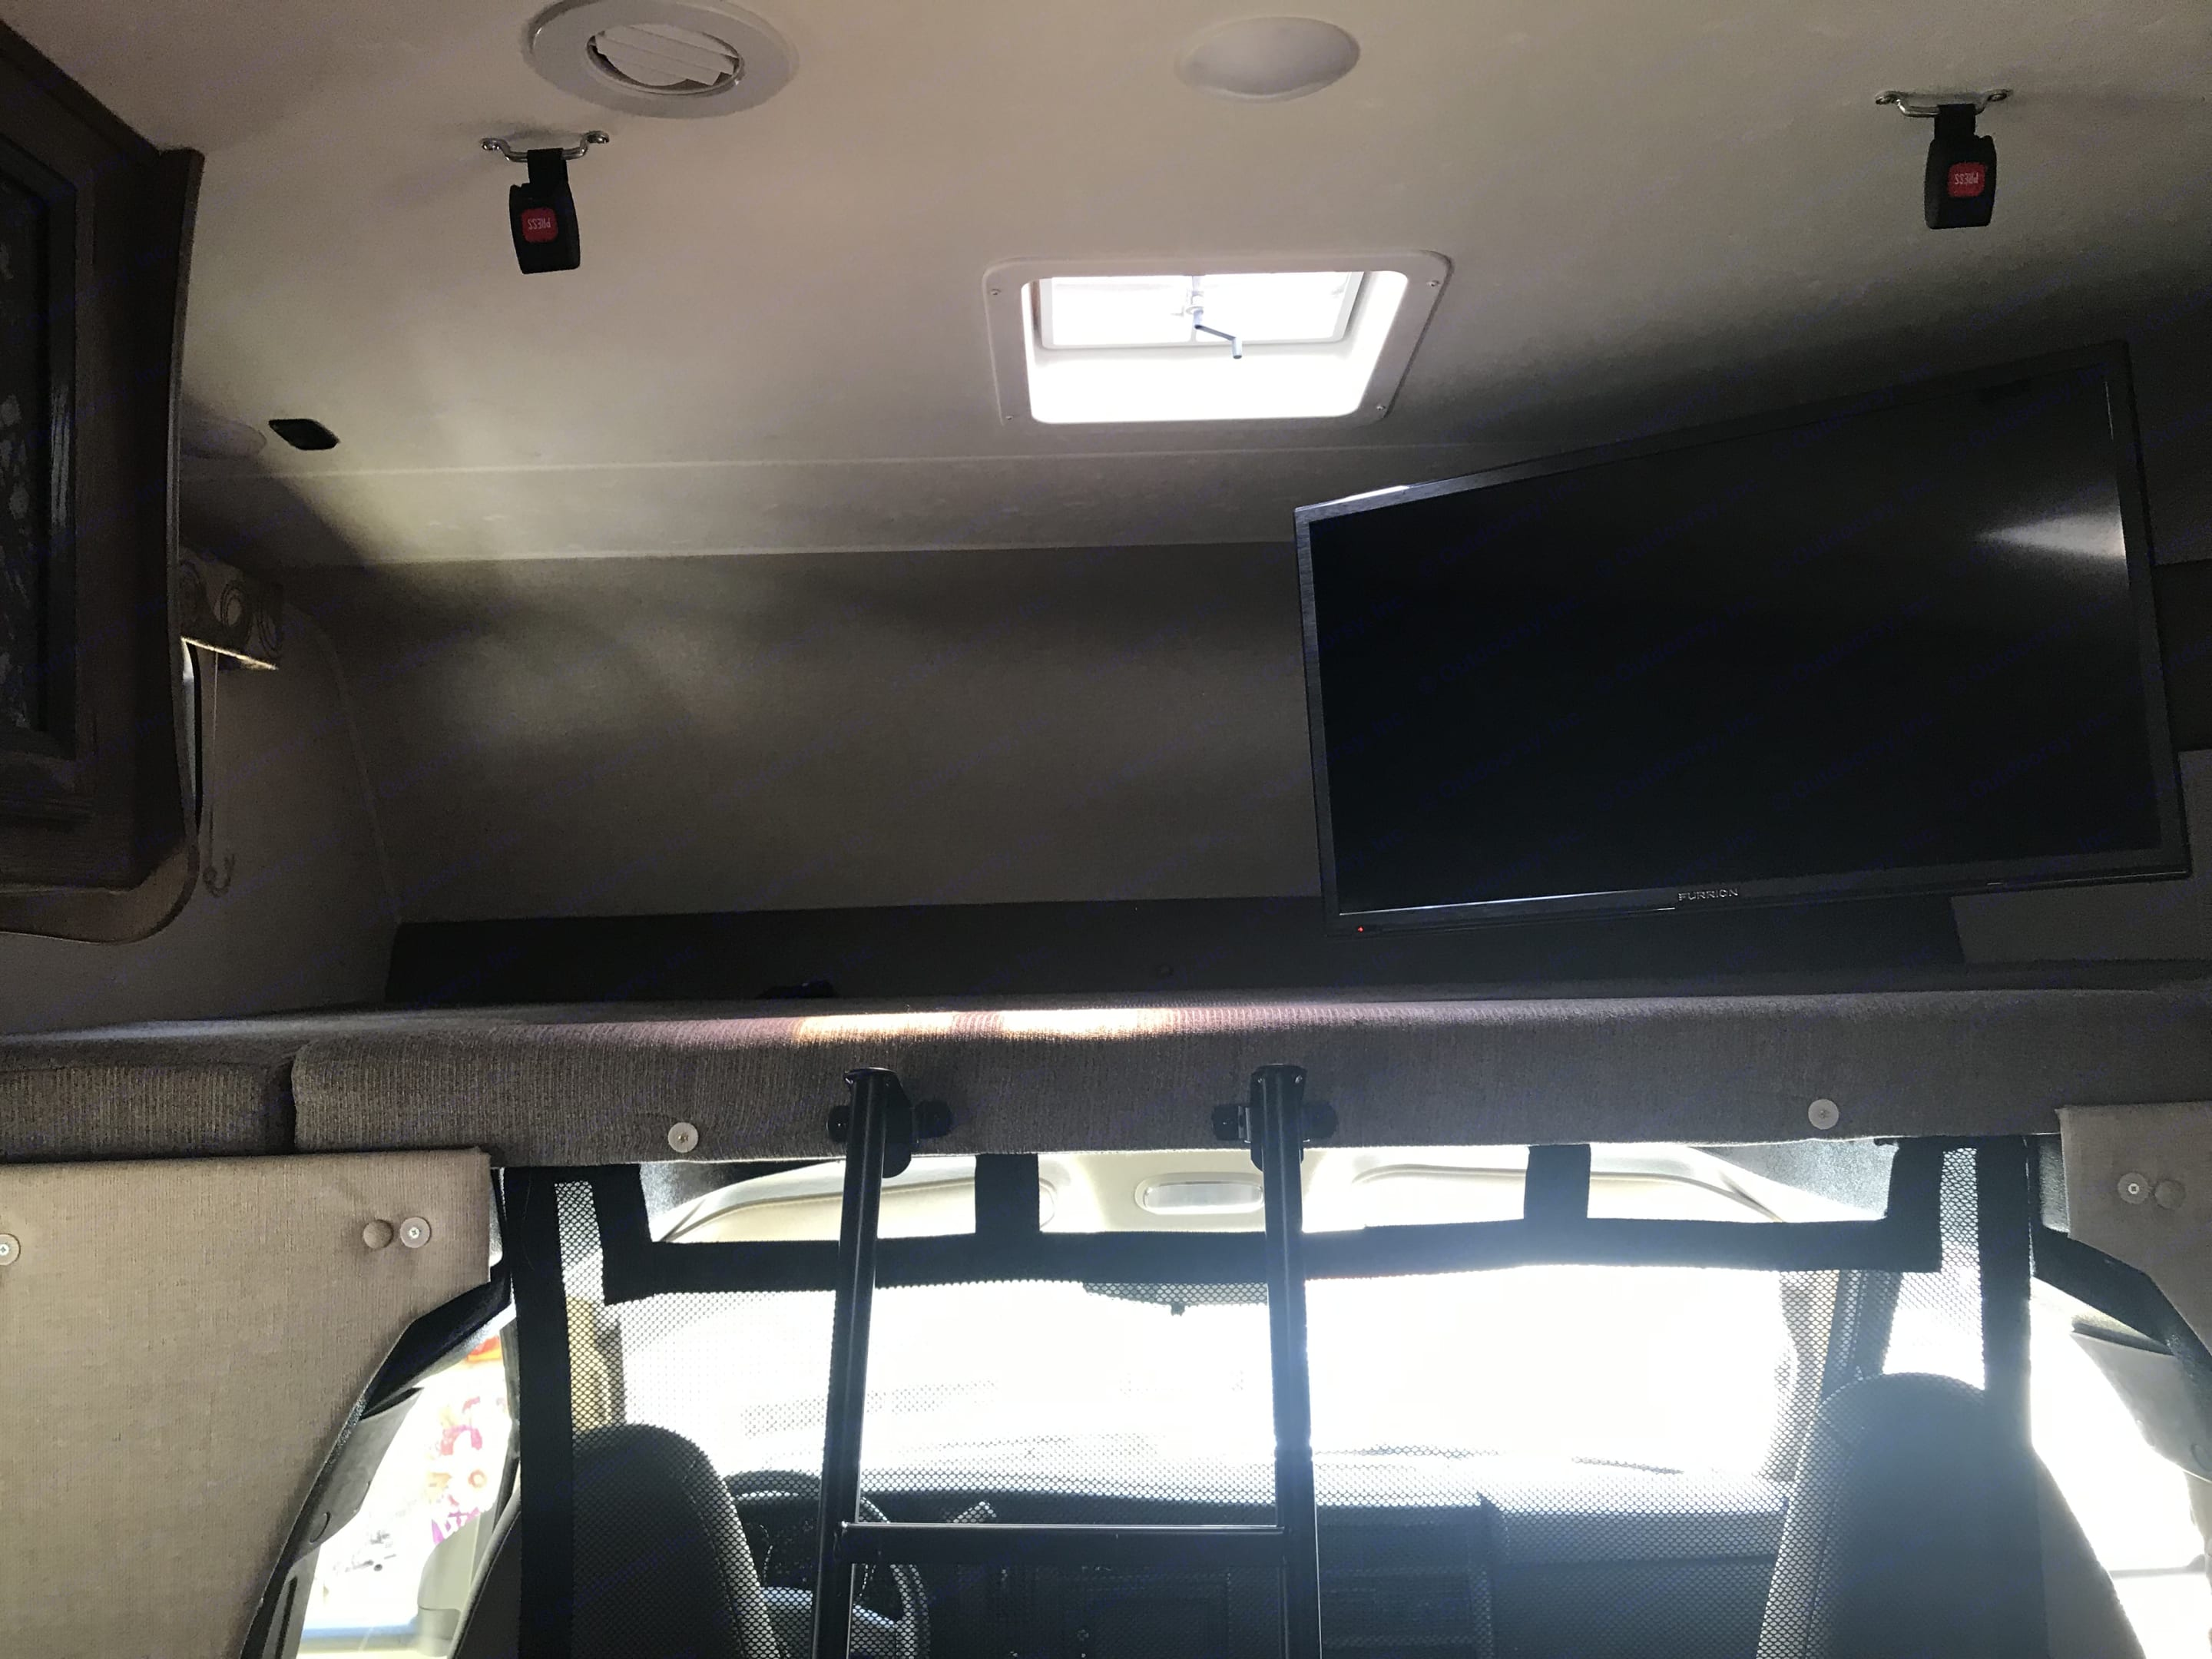 Bunk over cab fits 2 adults or 3 small people. Coachmen Freelander 2019